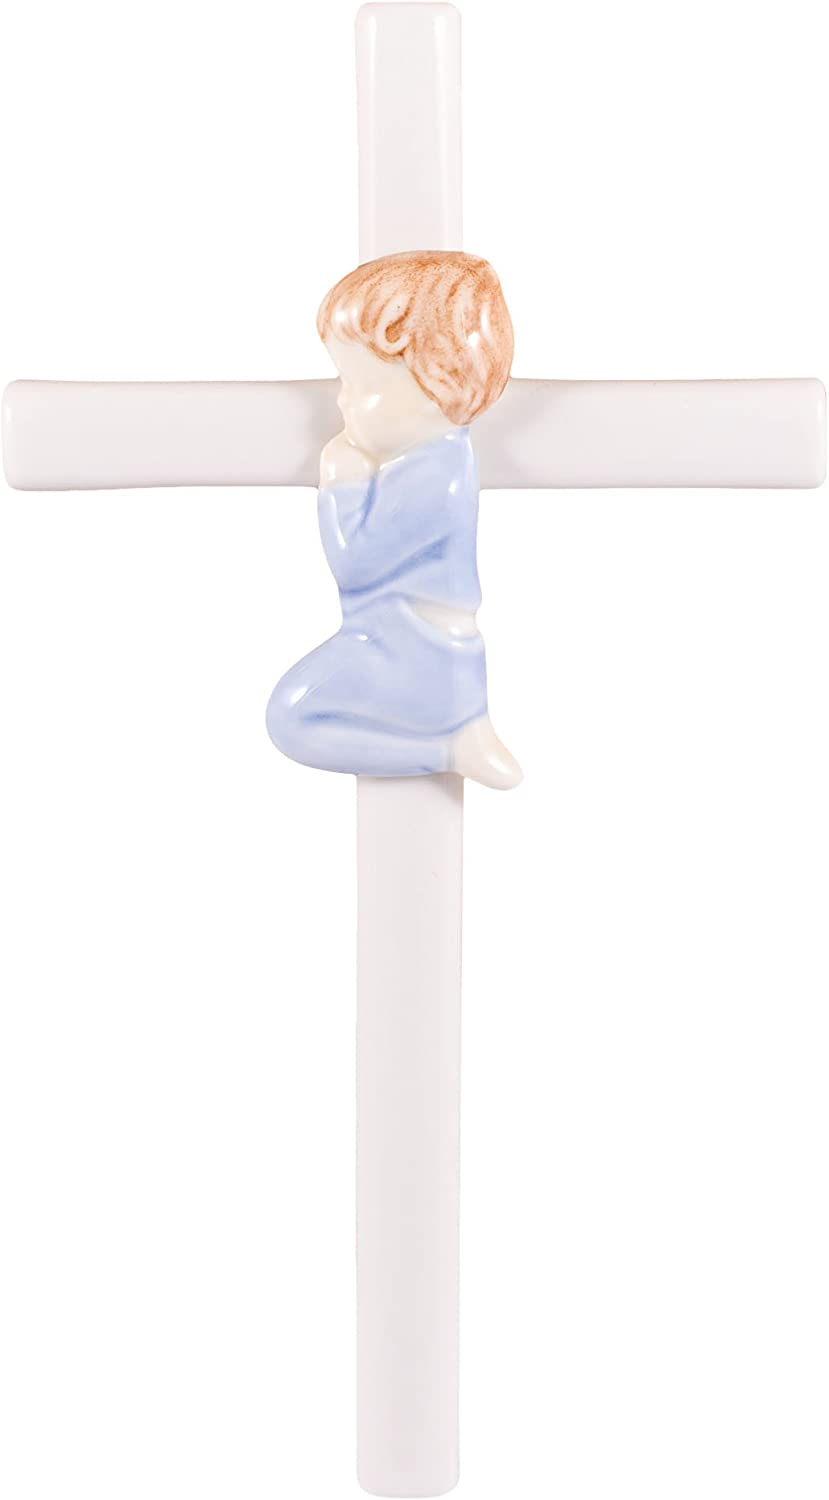 Praying Blue in Blue 7.5 Inch Hand-Painted Glazed White Porcelain Wall Cross